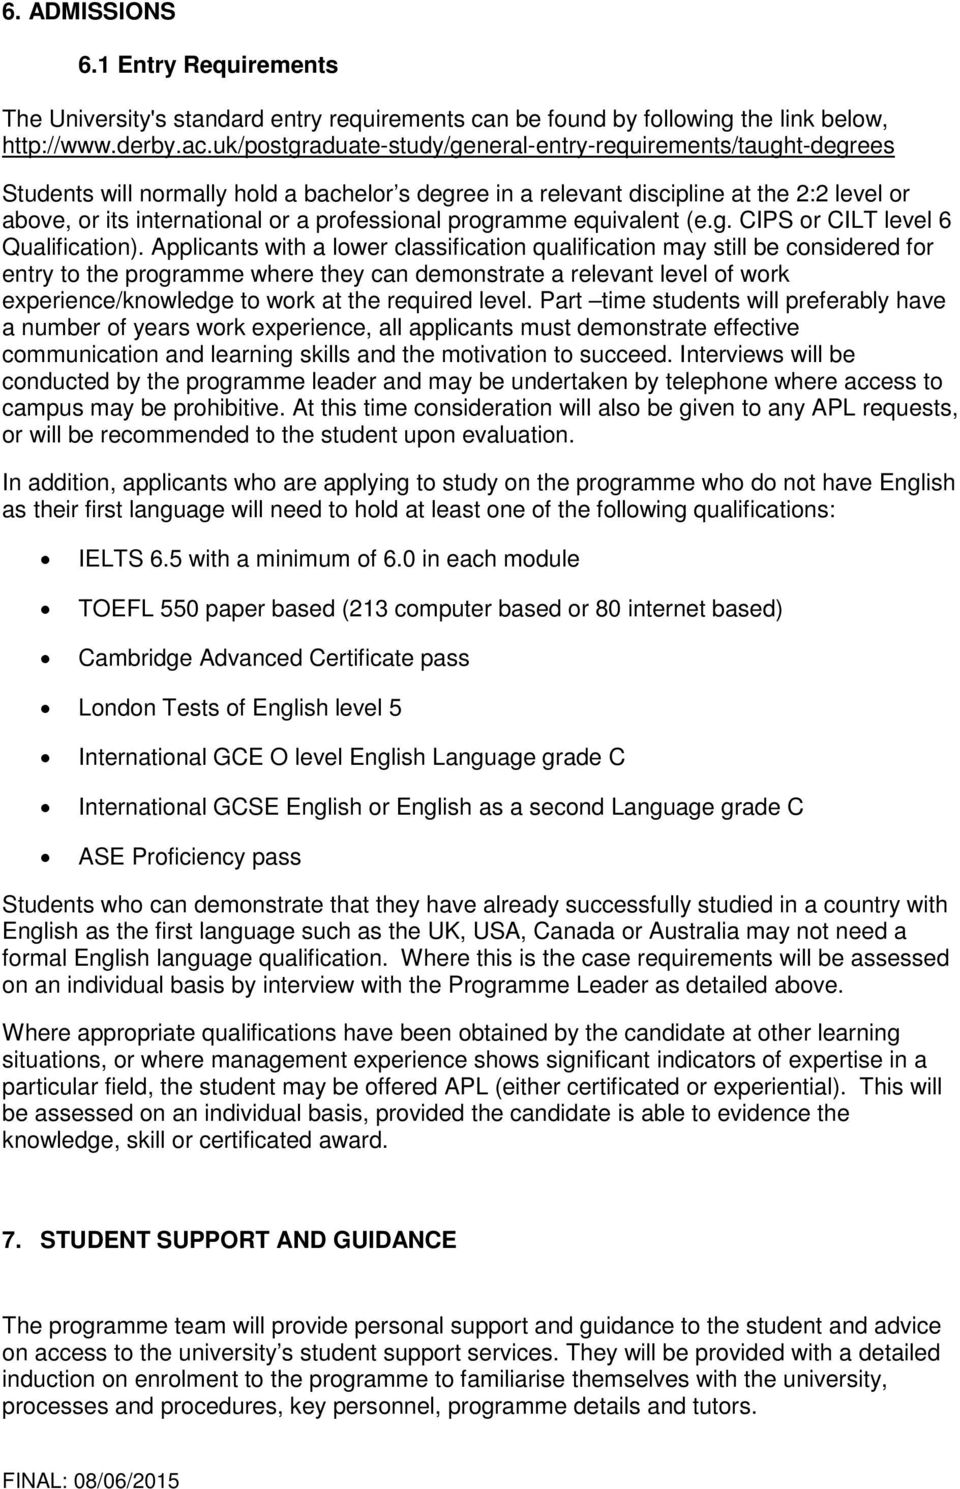 professional programme equivalent (e.g. CIPS or CILT level 6 Qualification).